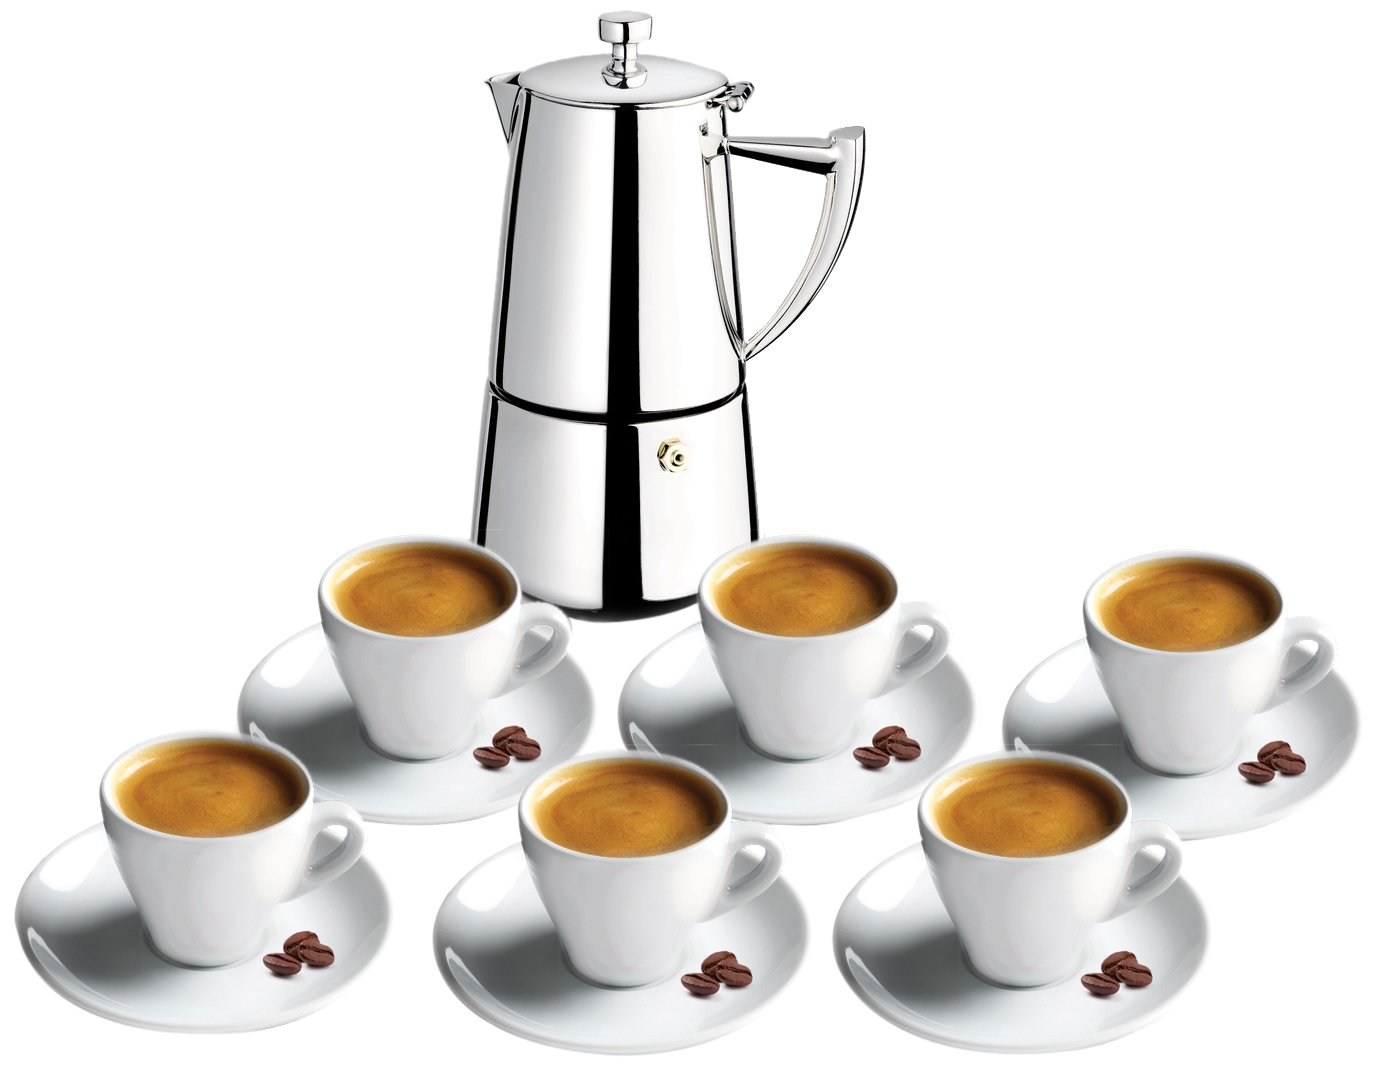 Cuisinox SET-6R66 Set of 6 Espresso Cups and Roma 6-Cup Espresso Coffeemaker, Silver